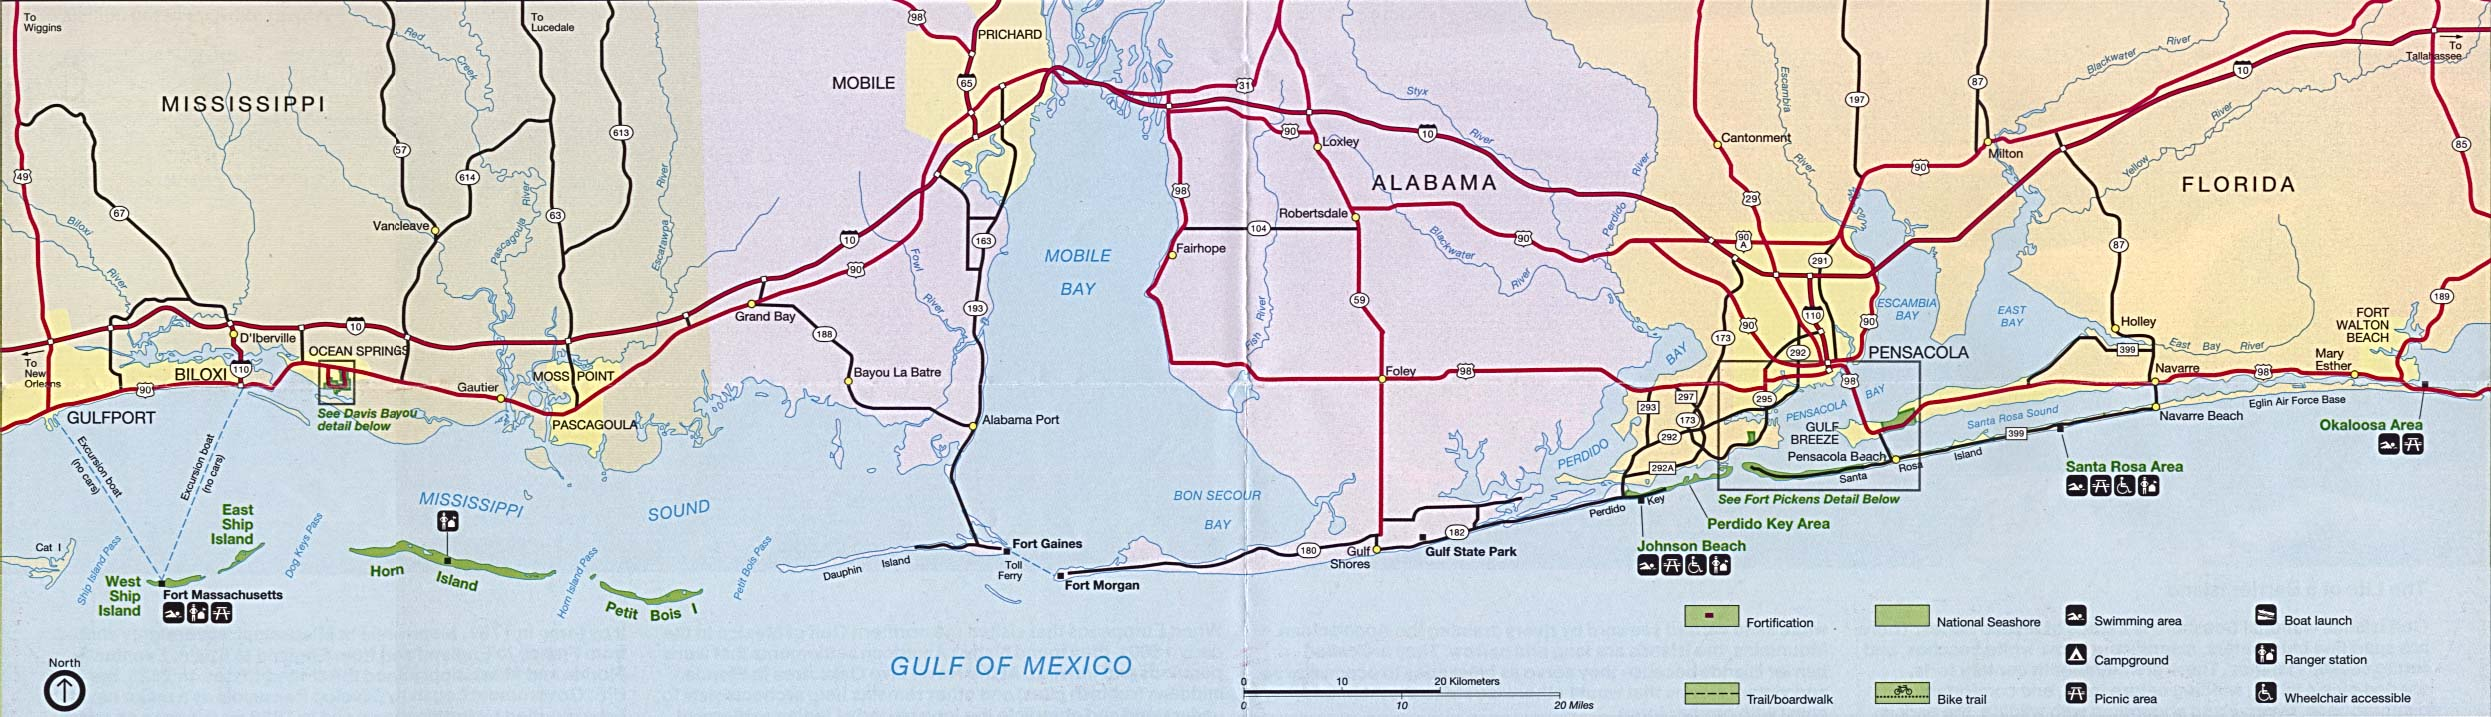 Gulf of Mexico Area Features Map, Mississippi / Alabama / Florida, United States